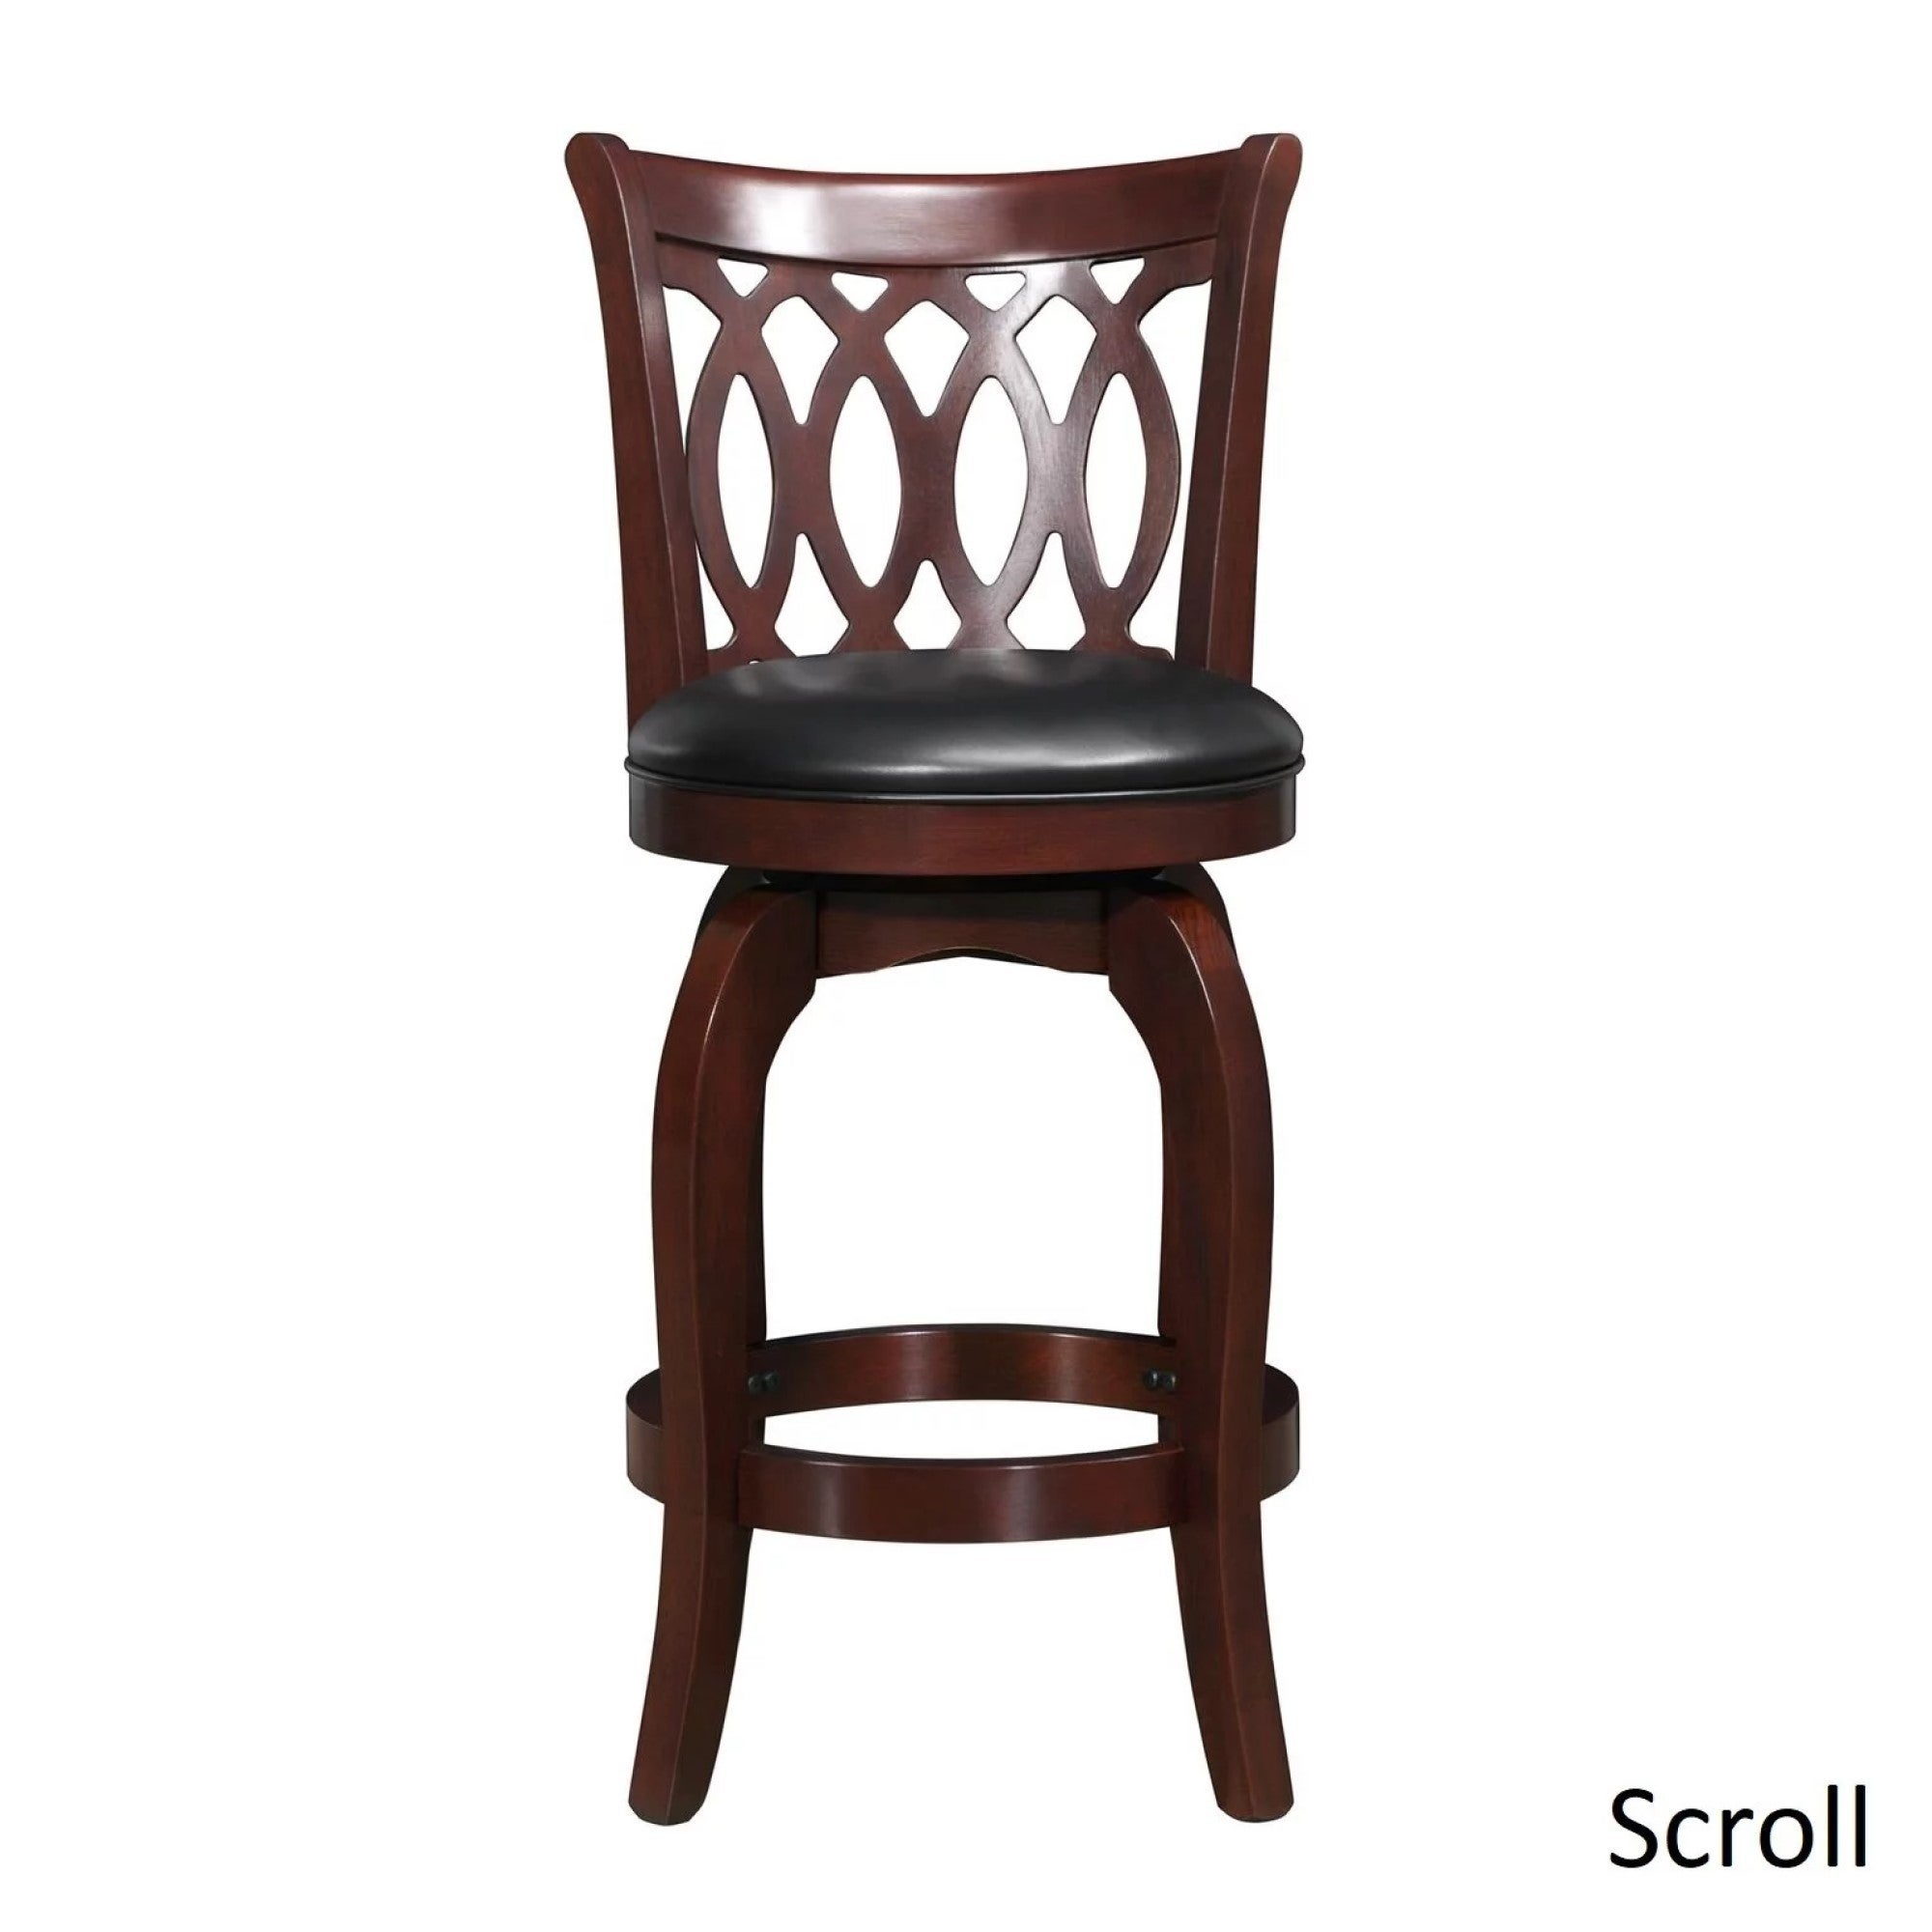 Verona Cherry Swivel 24 Inch High Back Counter Height Stool By Inspire Q Clic On Free Shipping Today 4101670